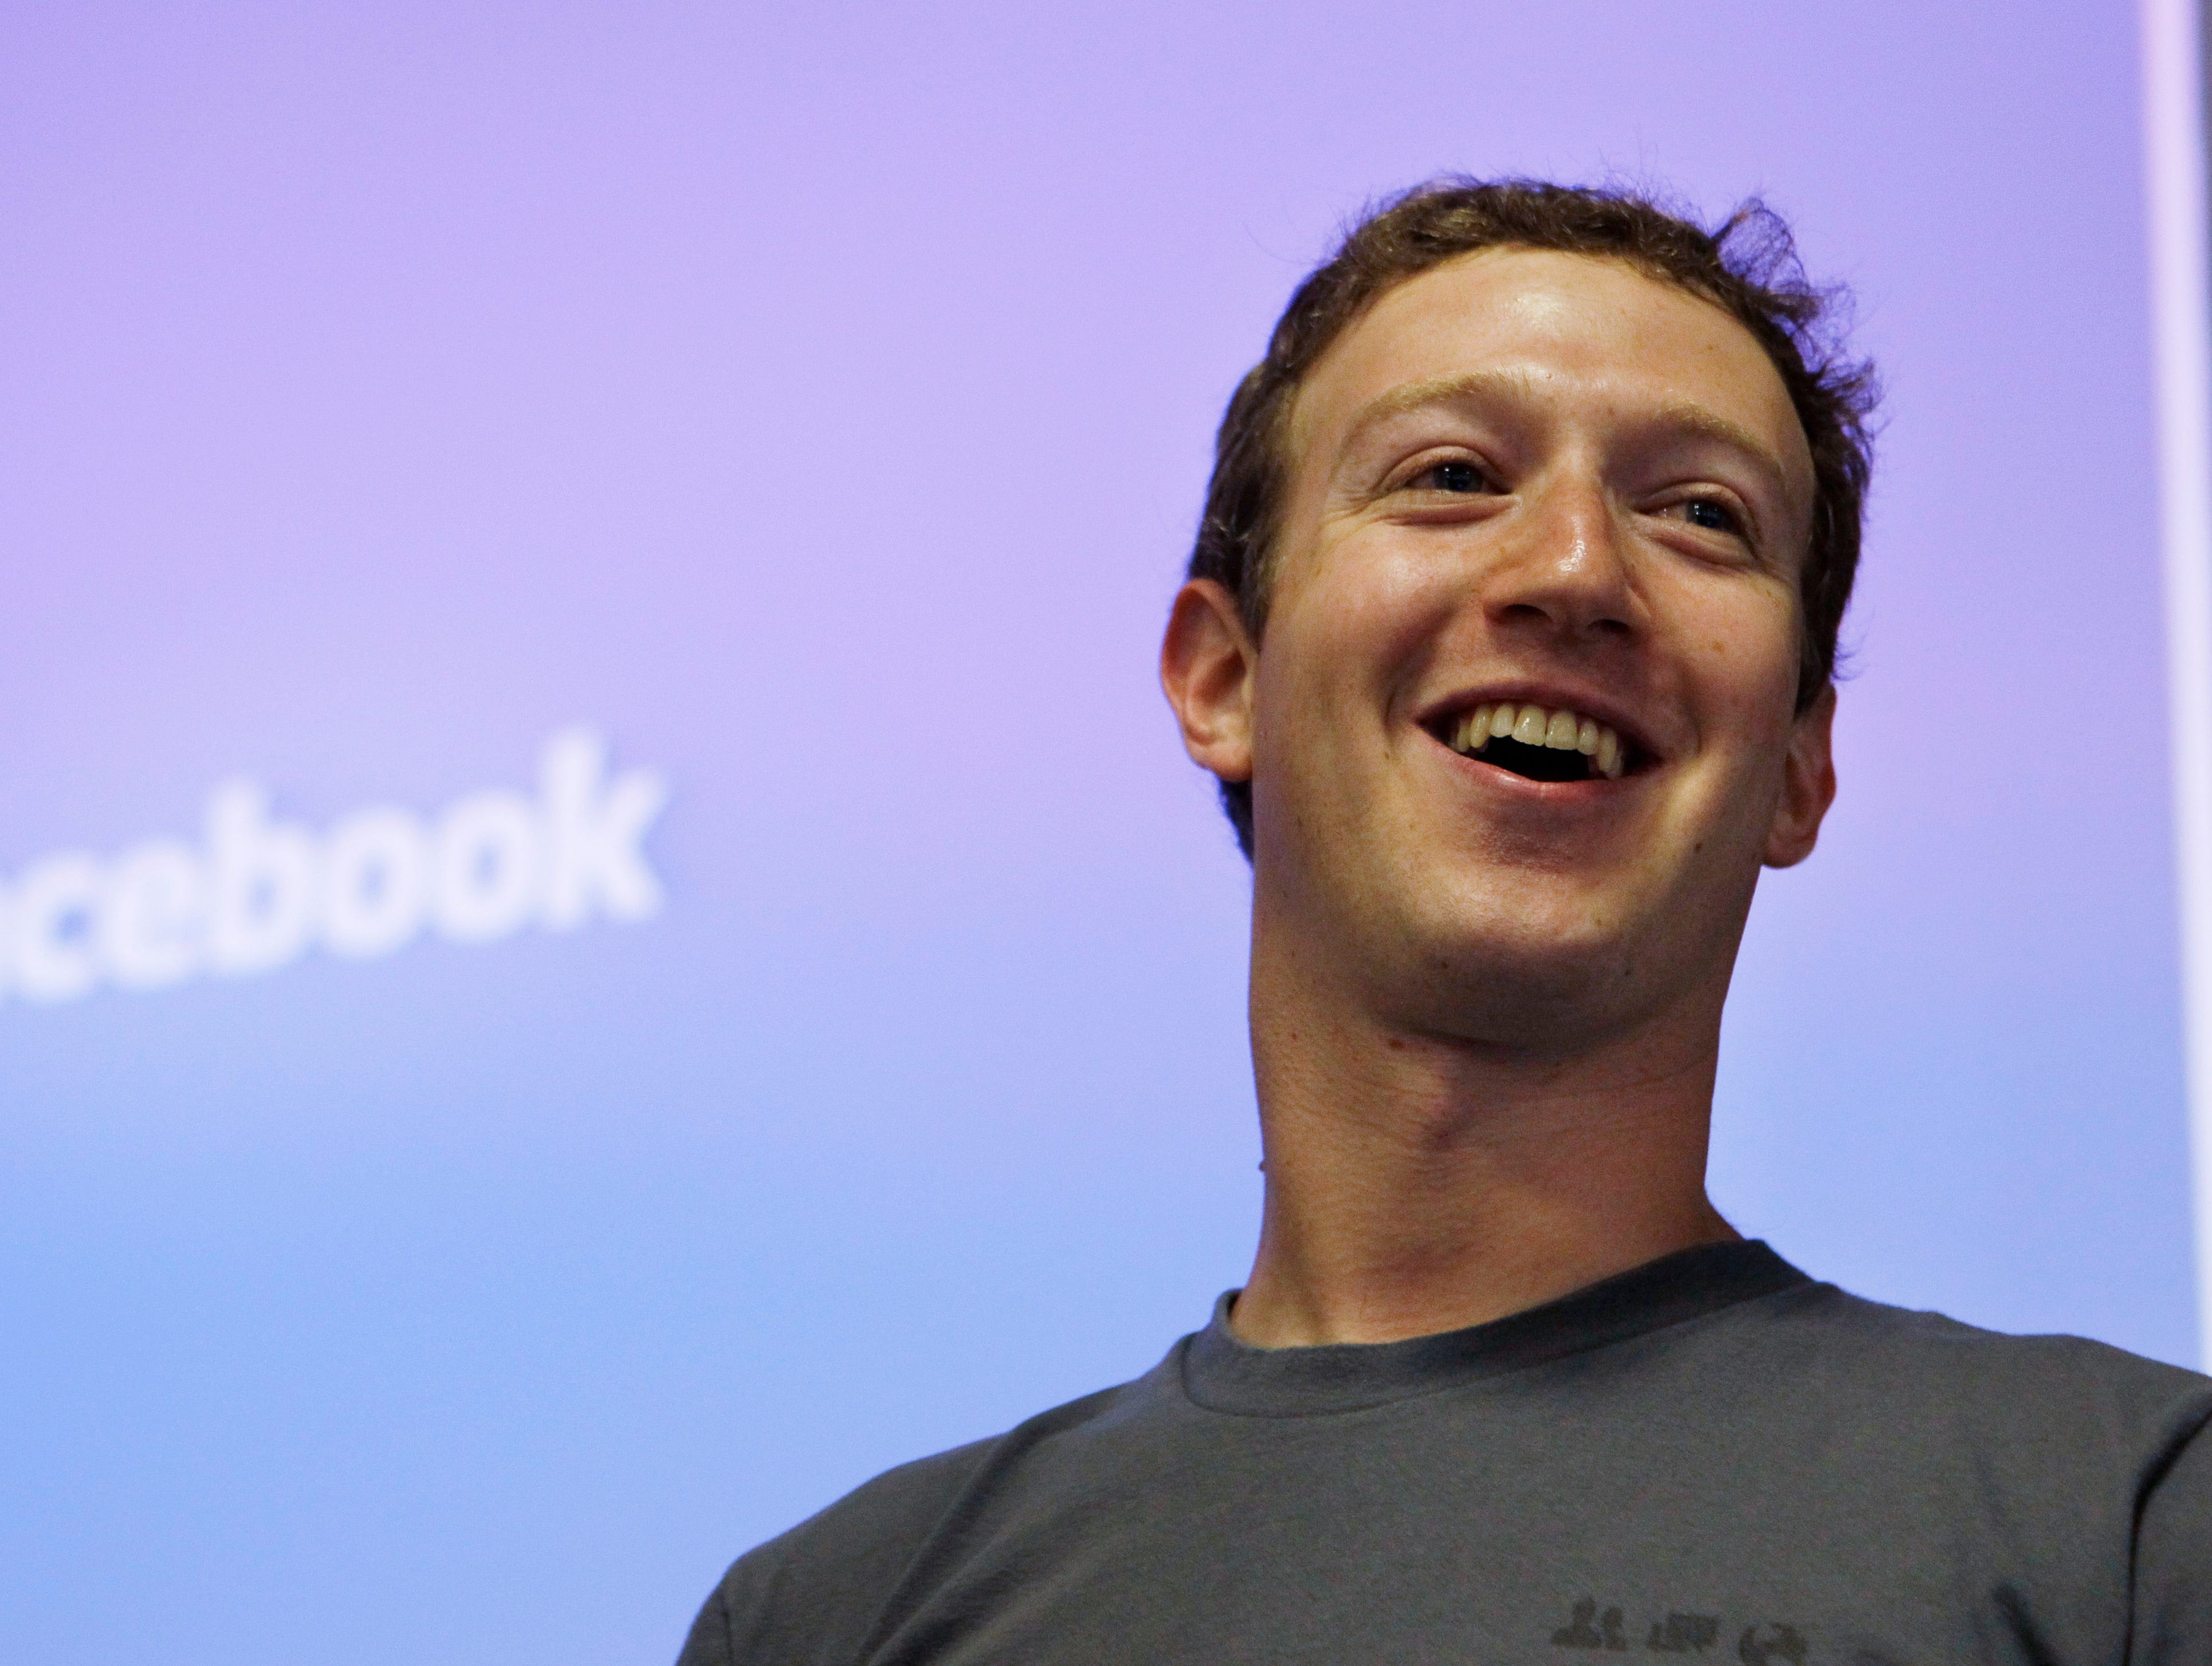 In this July 6, 2011 file photo, Facebook CEO Mark Zuckerberg smiles during an announcement at Facebook headquarters in Palo Alto, Calif.